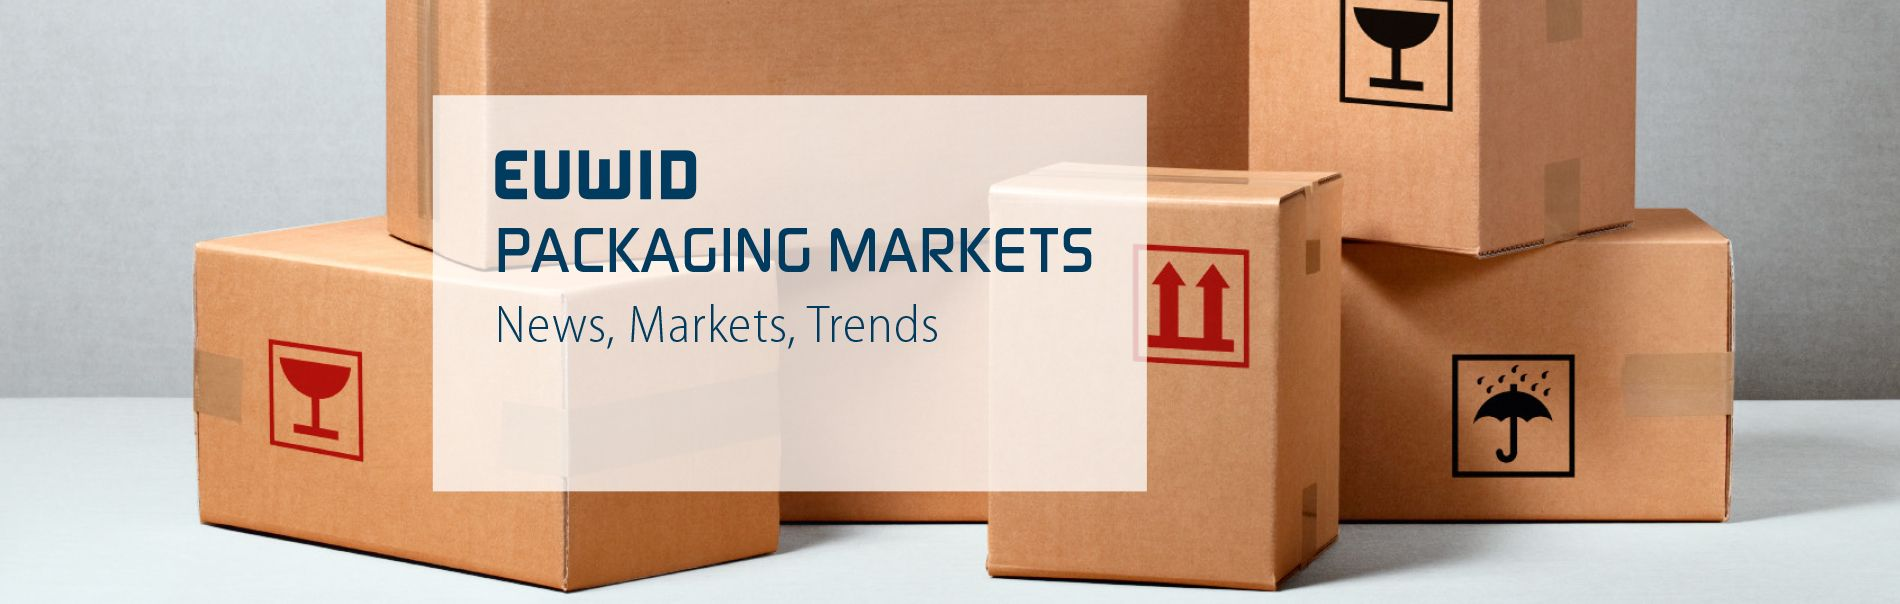 EUWID Packaging Markets - News, Markets & Trends